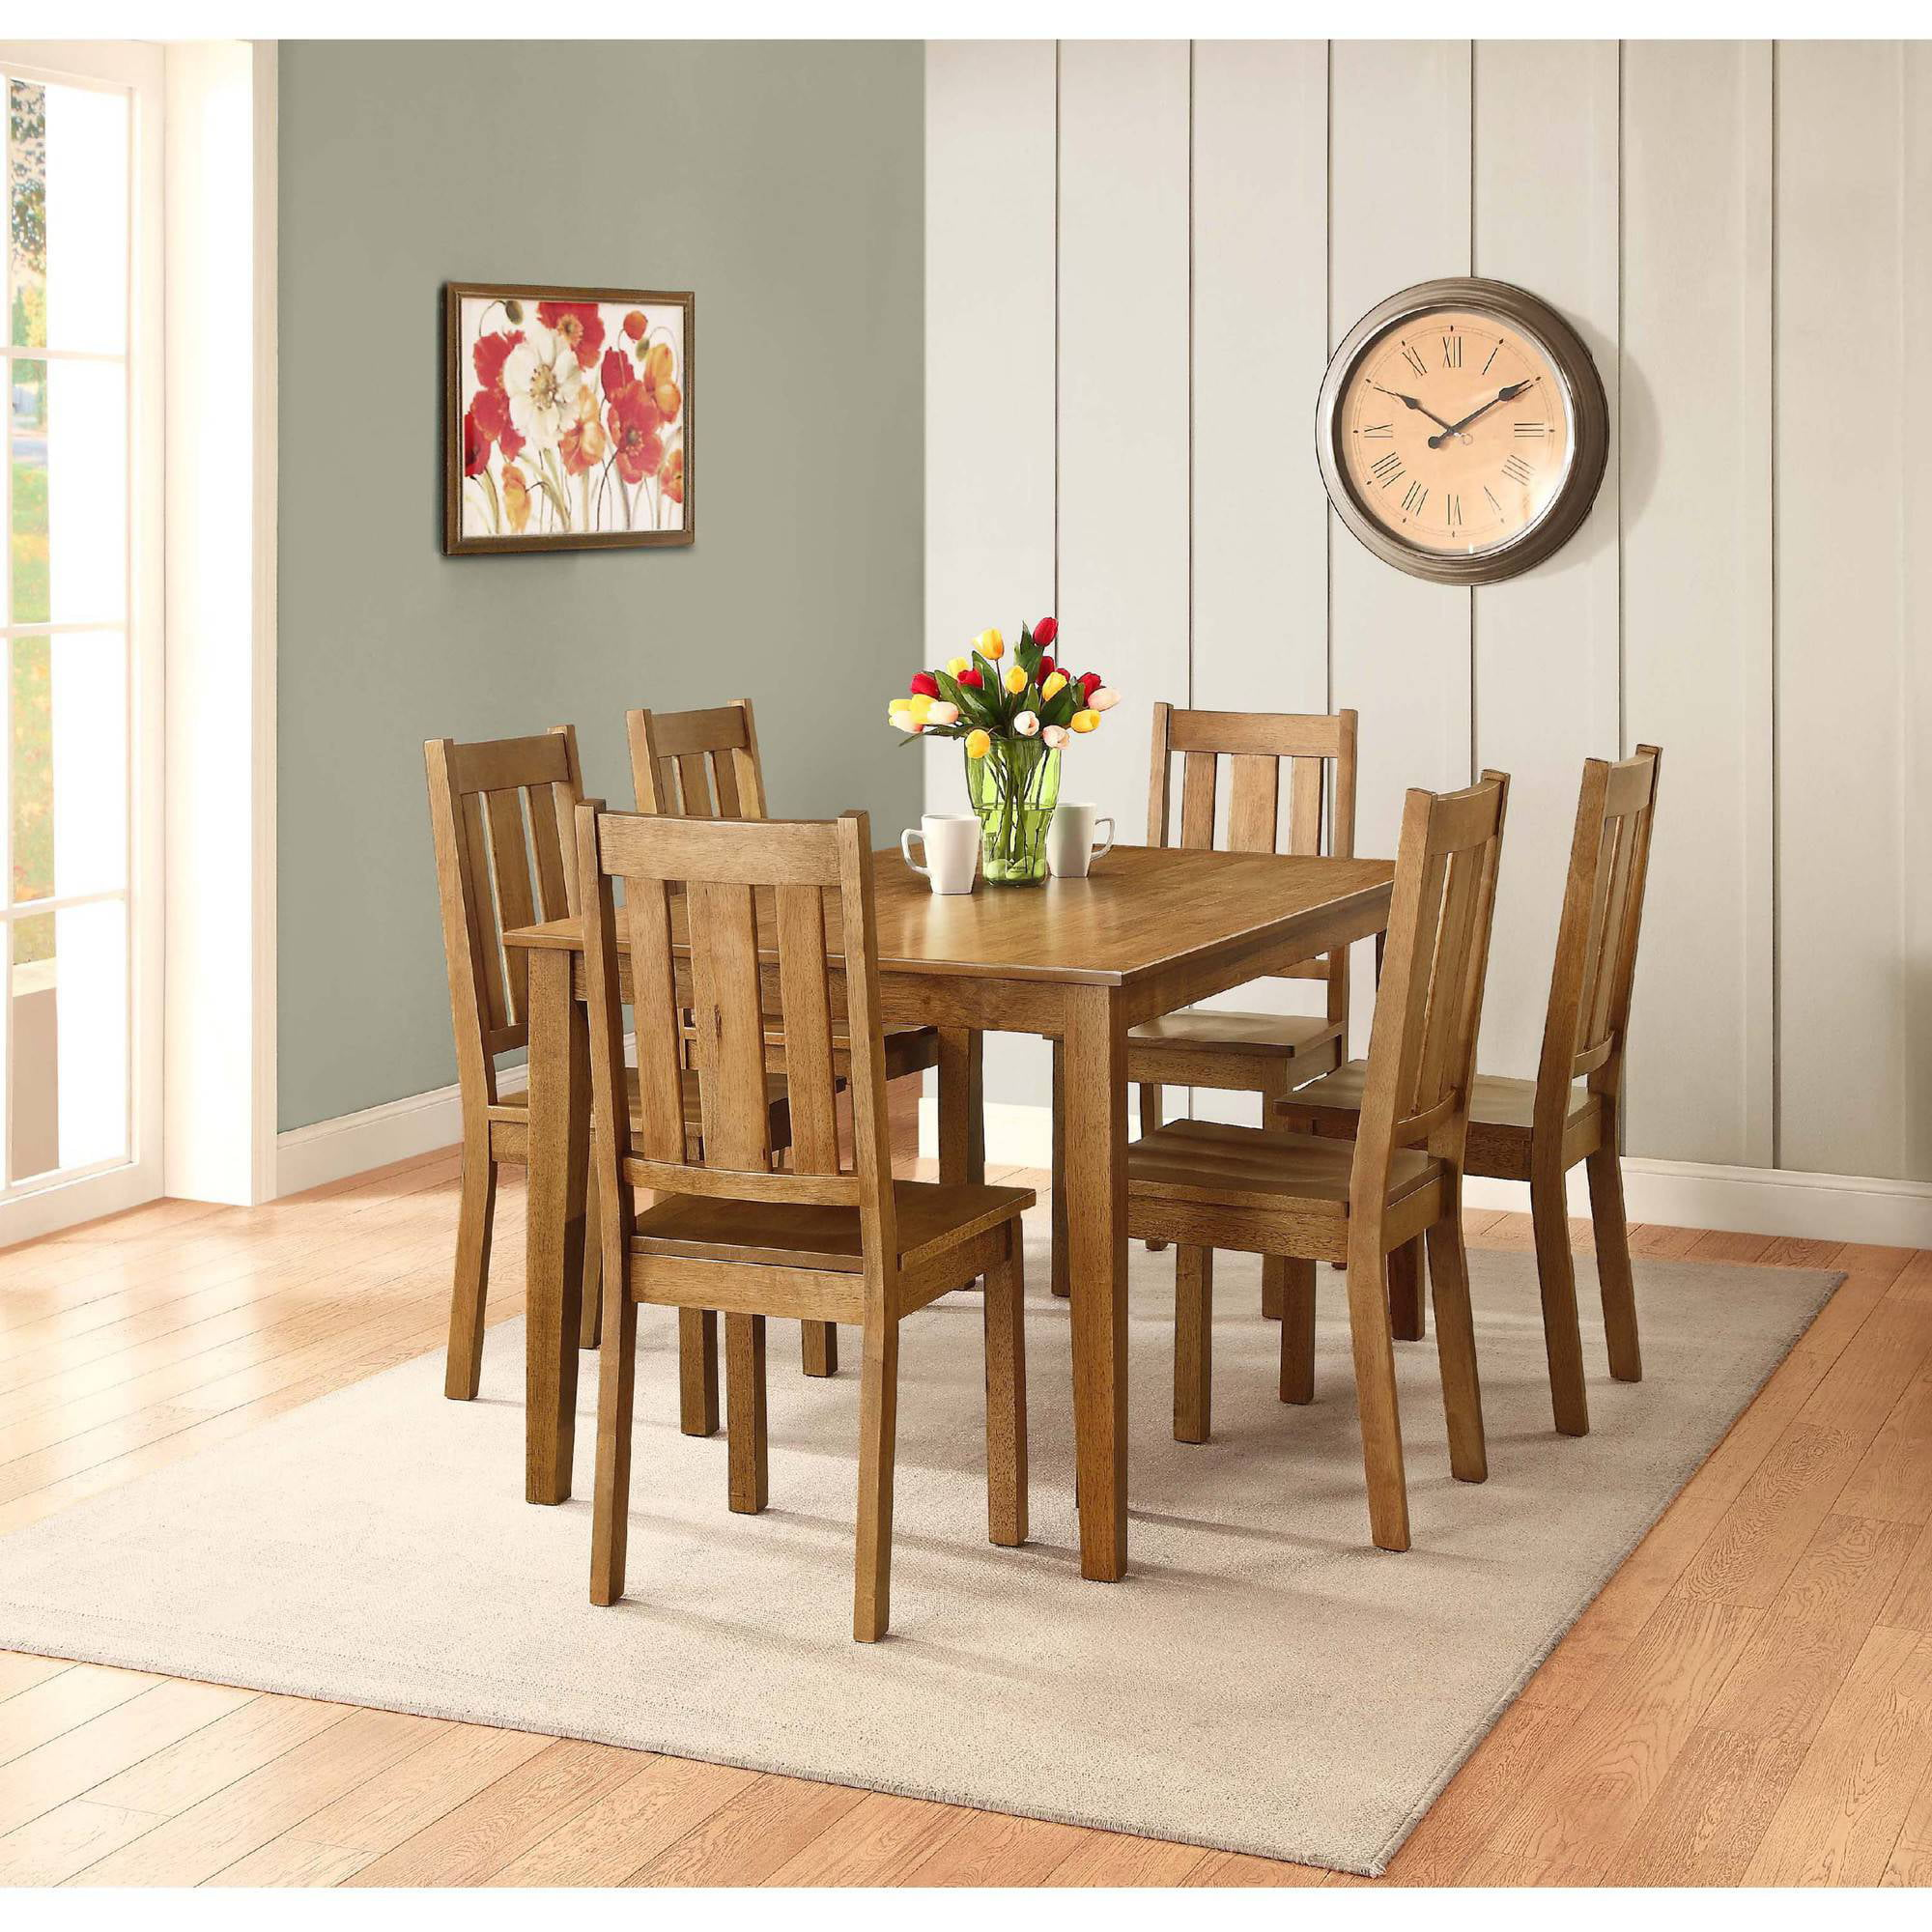 better homes and gardens bankston dining chair set of 2 honey better homes and gardens bankston dining chair set of 2 honey walmart com